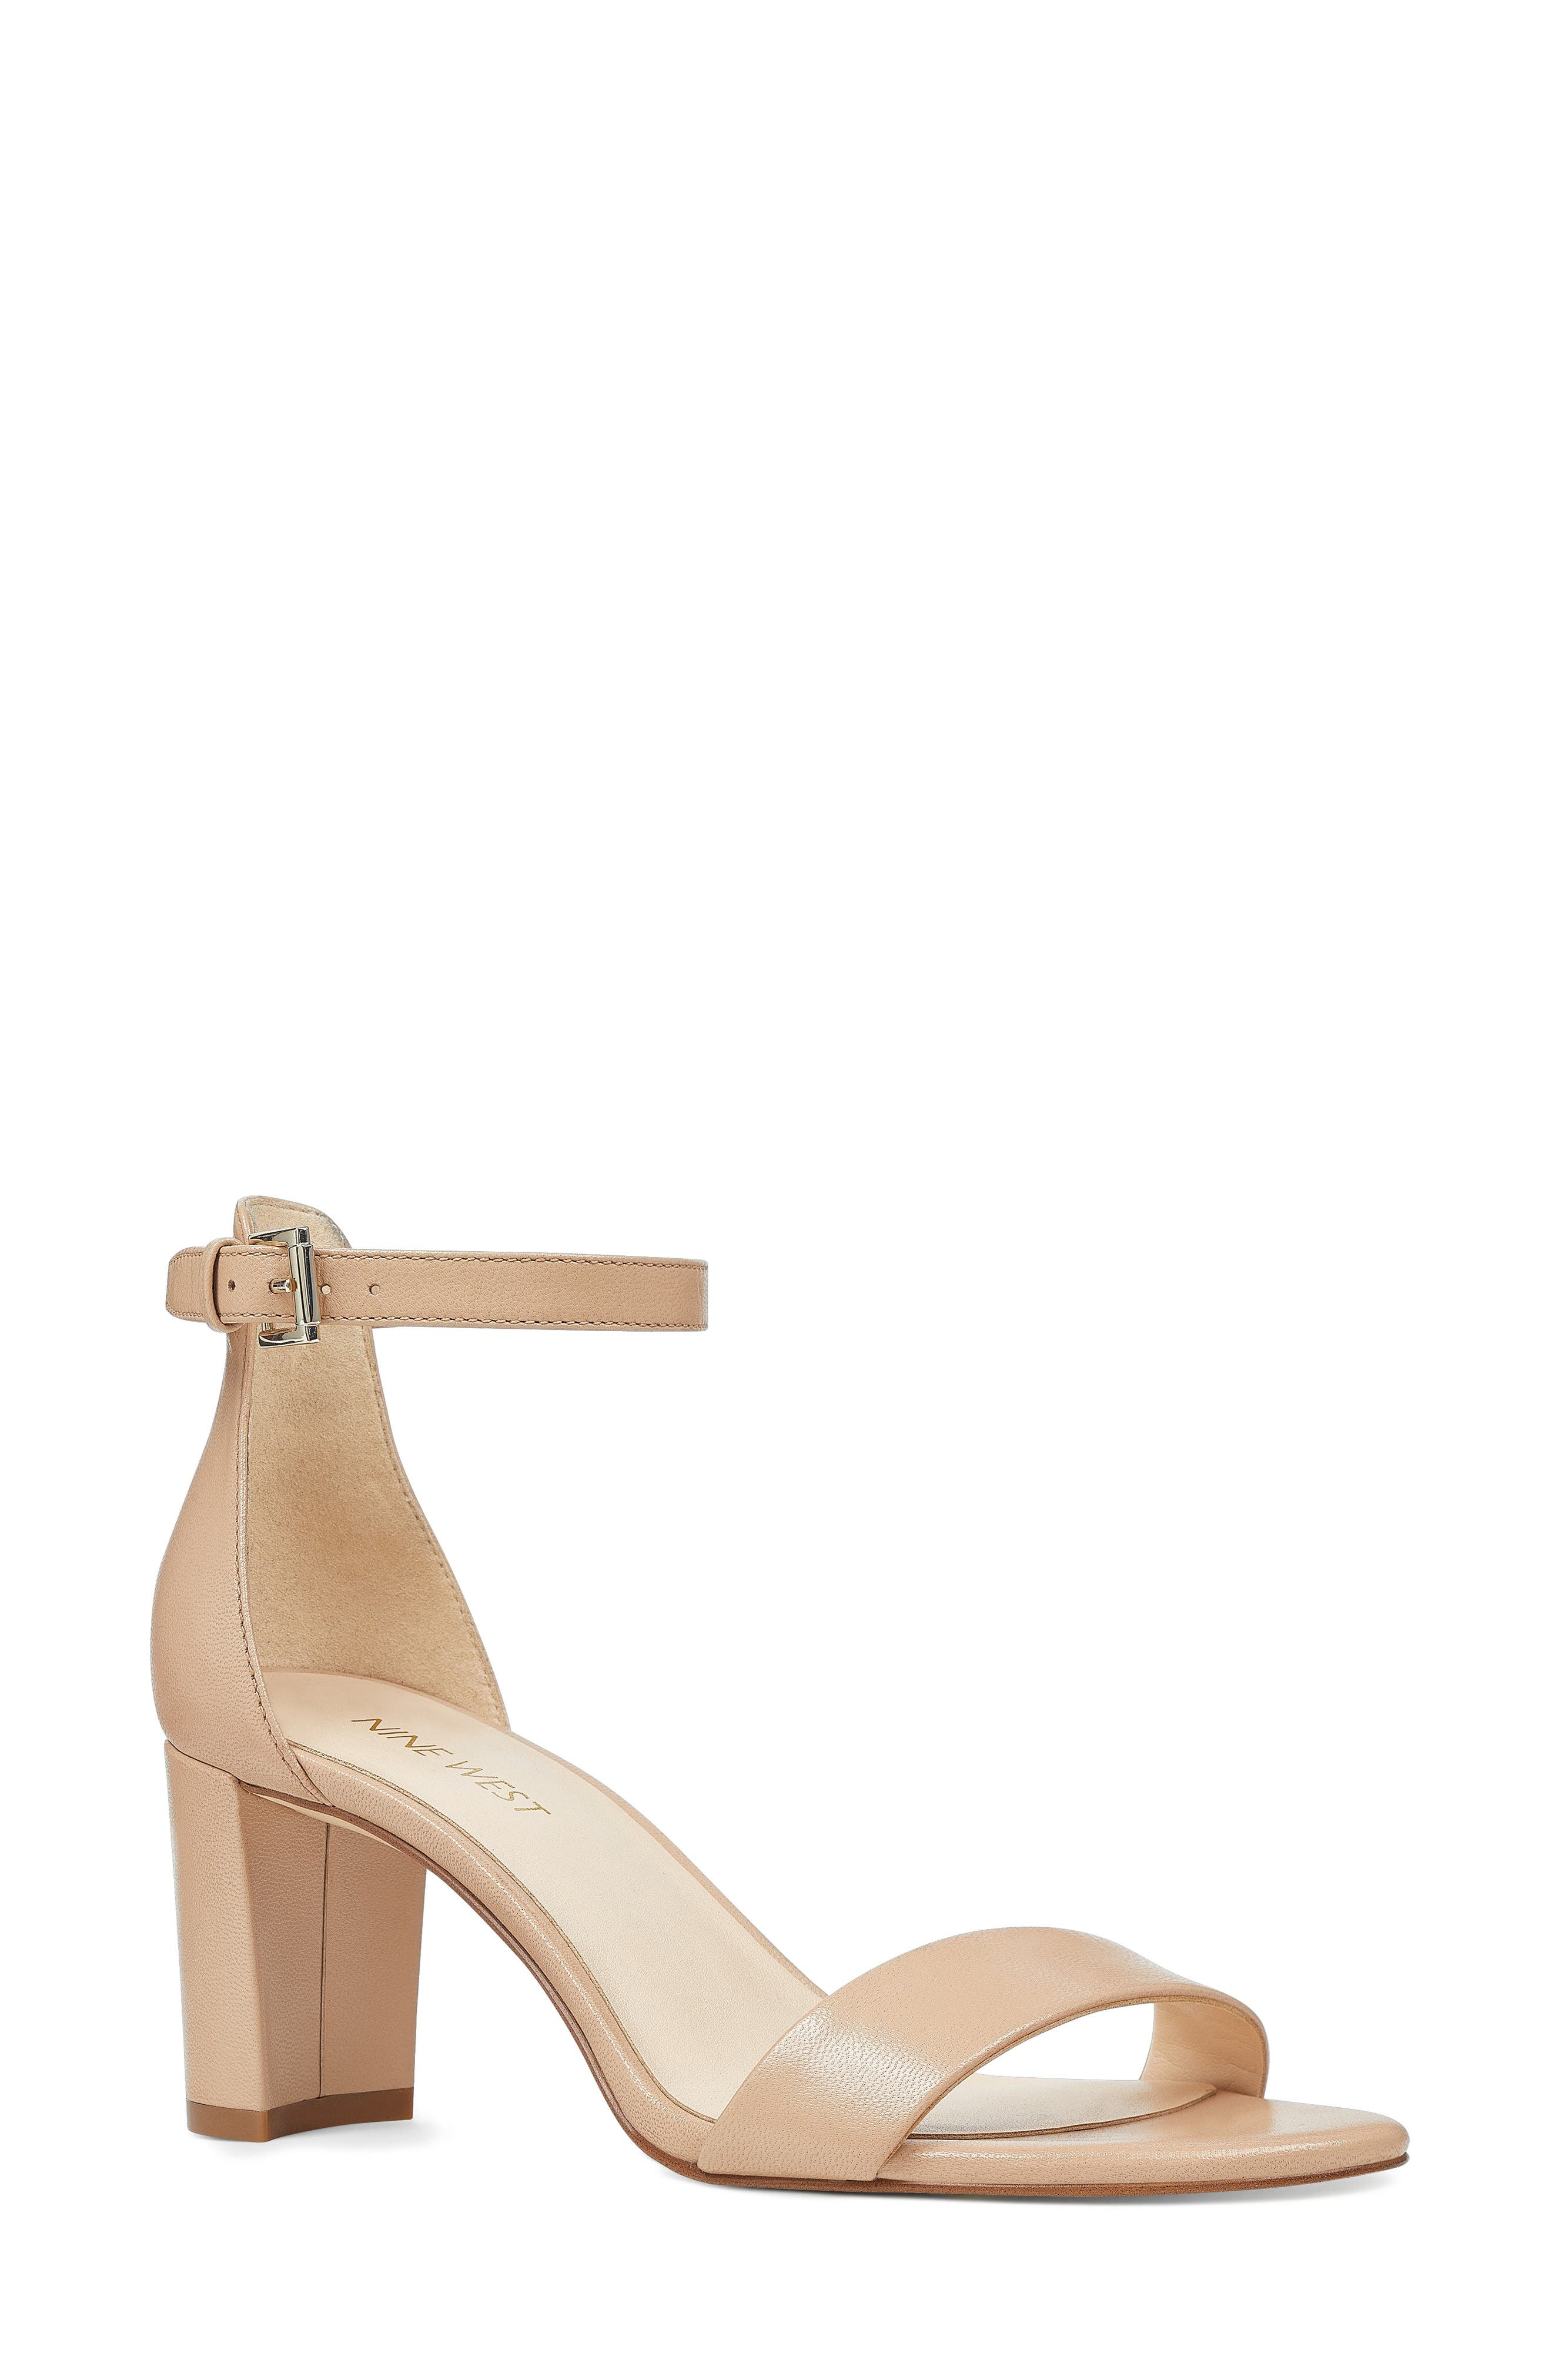 NINE WEST, Pruce Ankle Strap Sandal, Main thumbnail 1, color, LIGHT NATURAL LEATHER